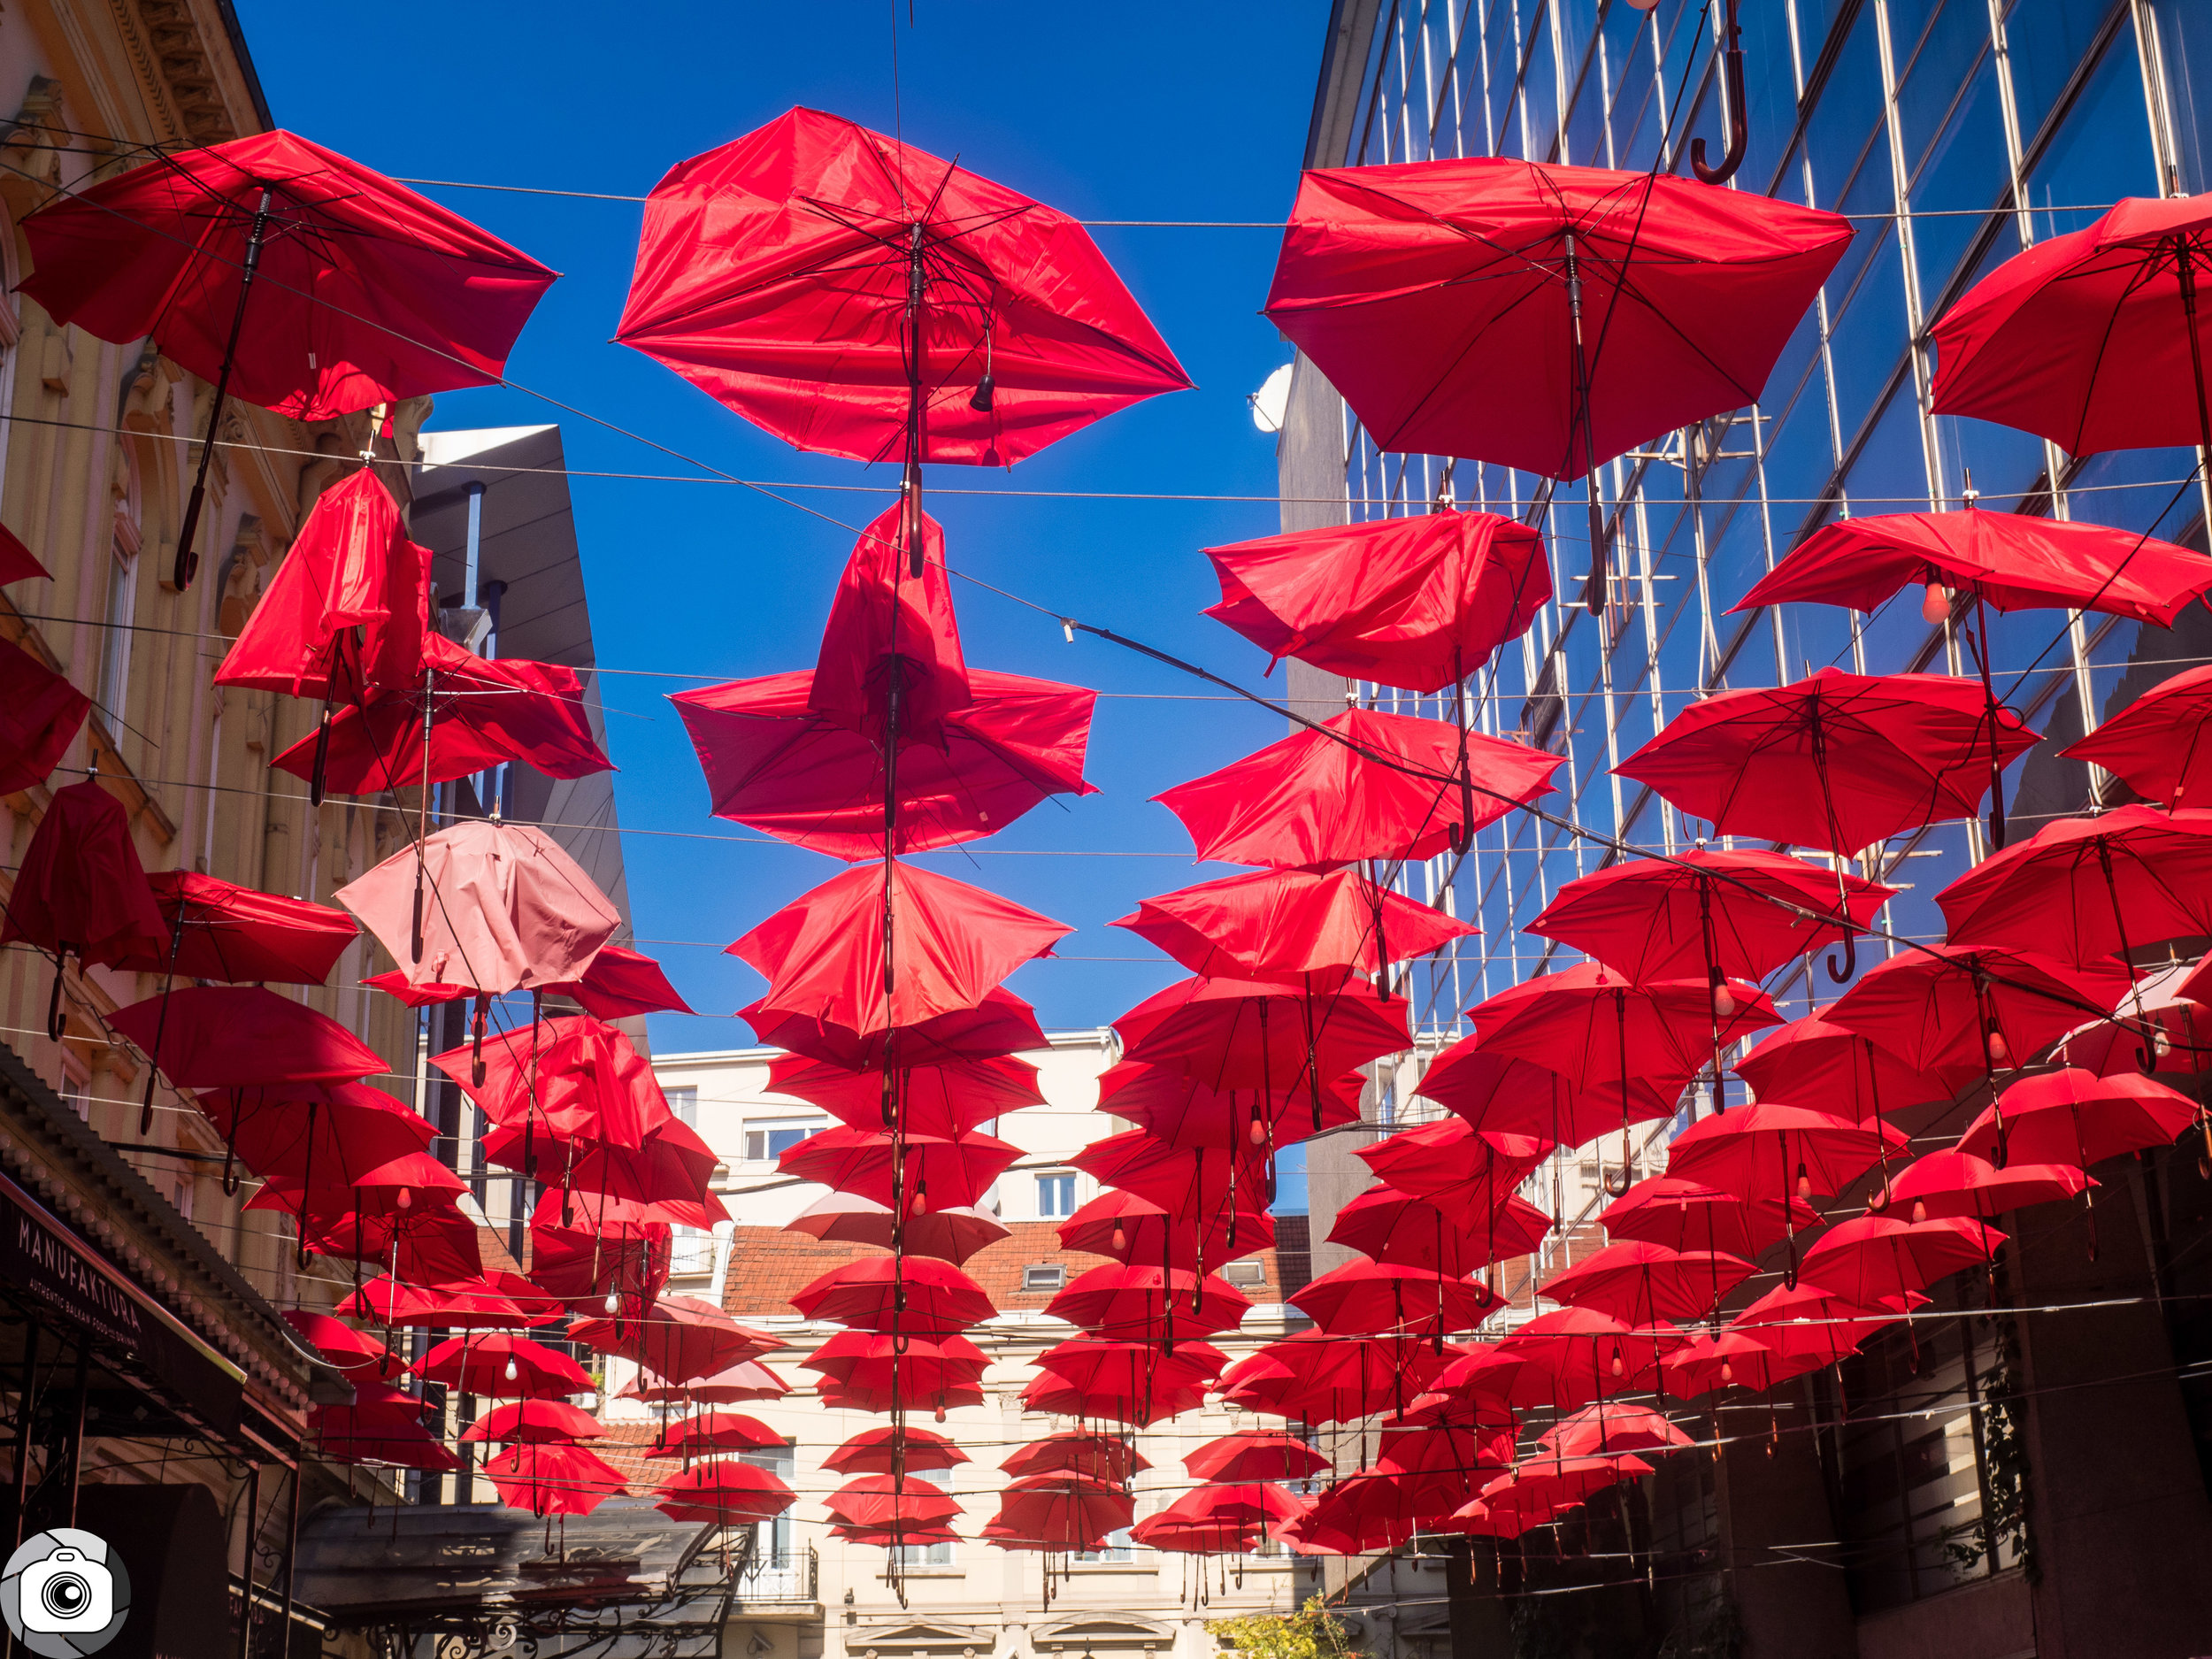 The Red-Umbrella Street